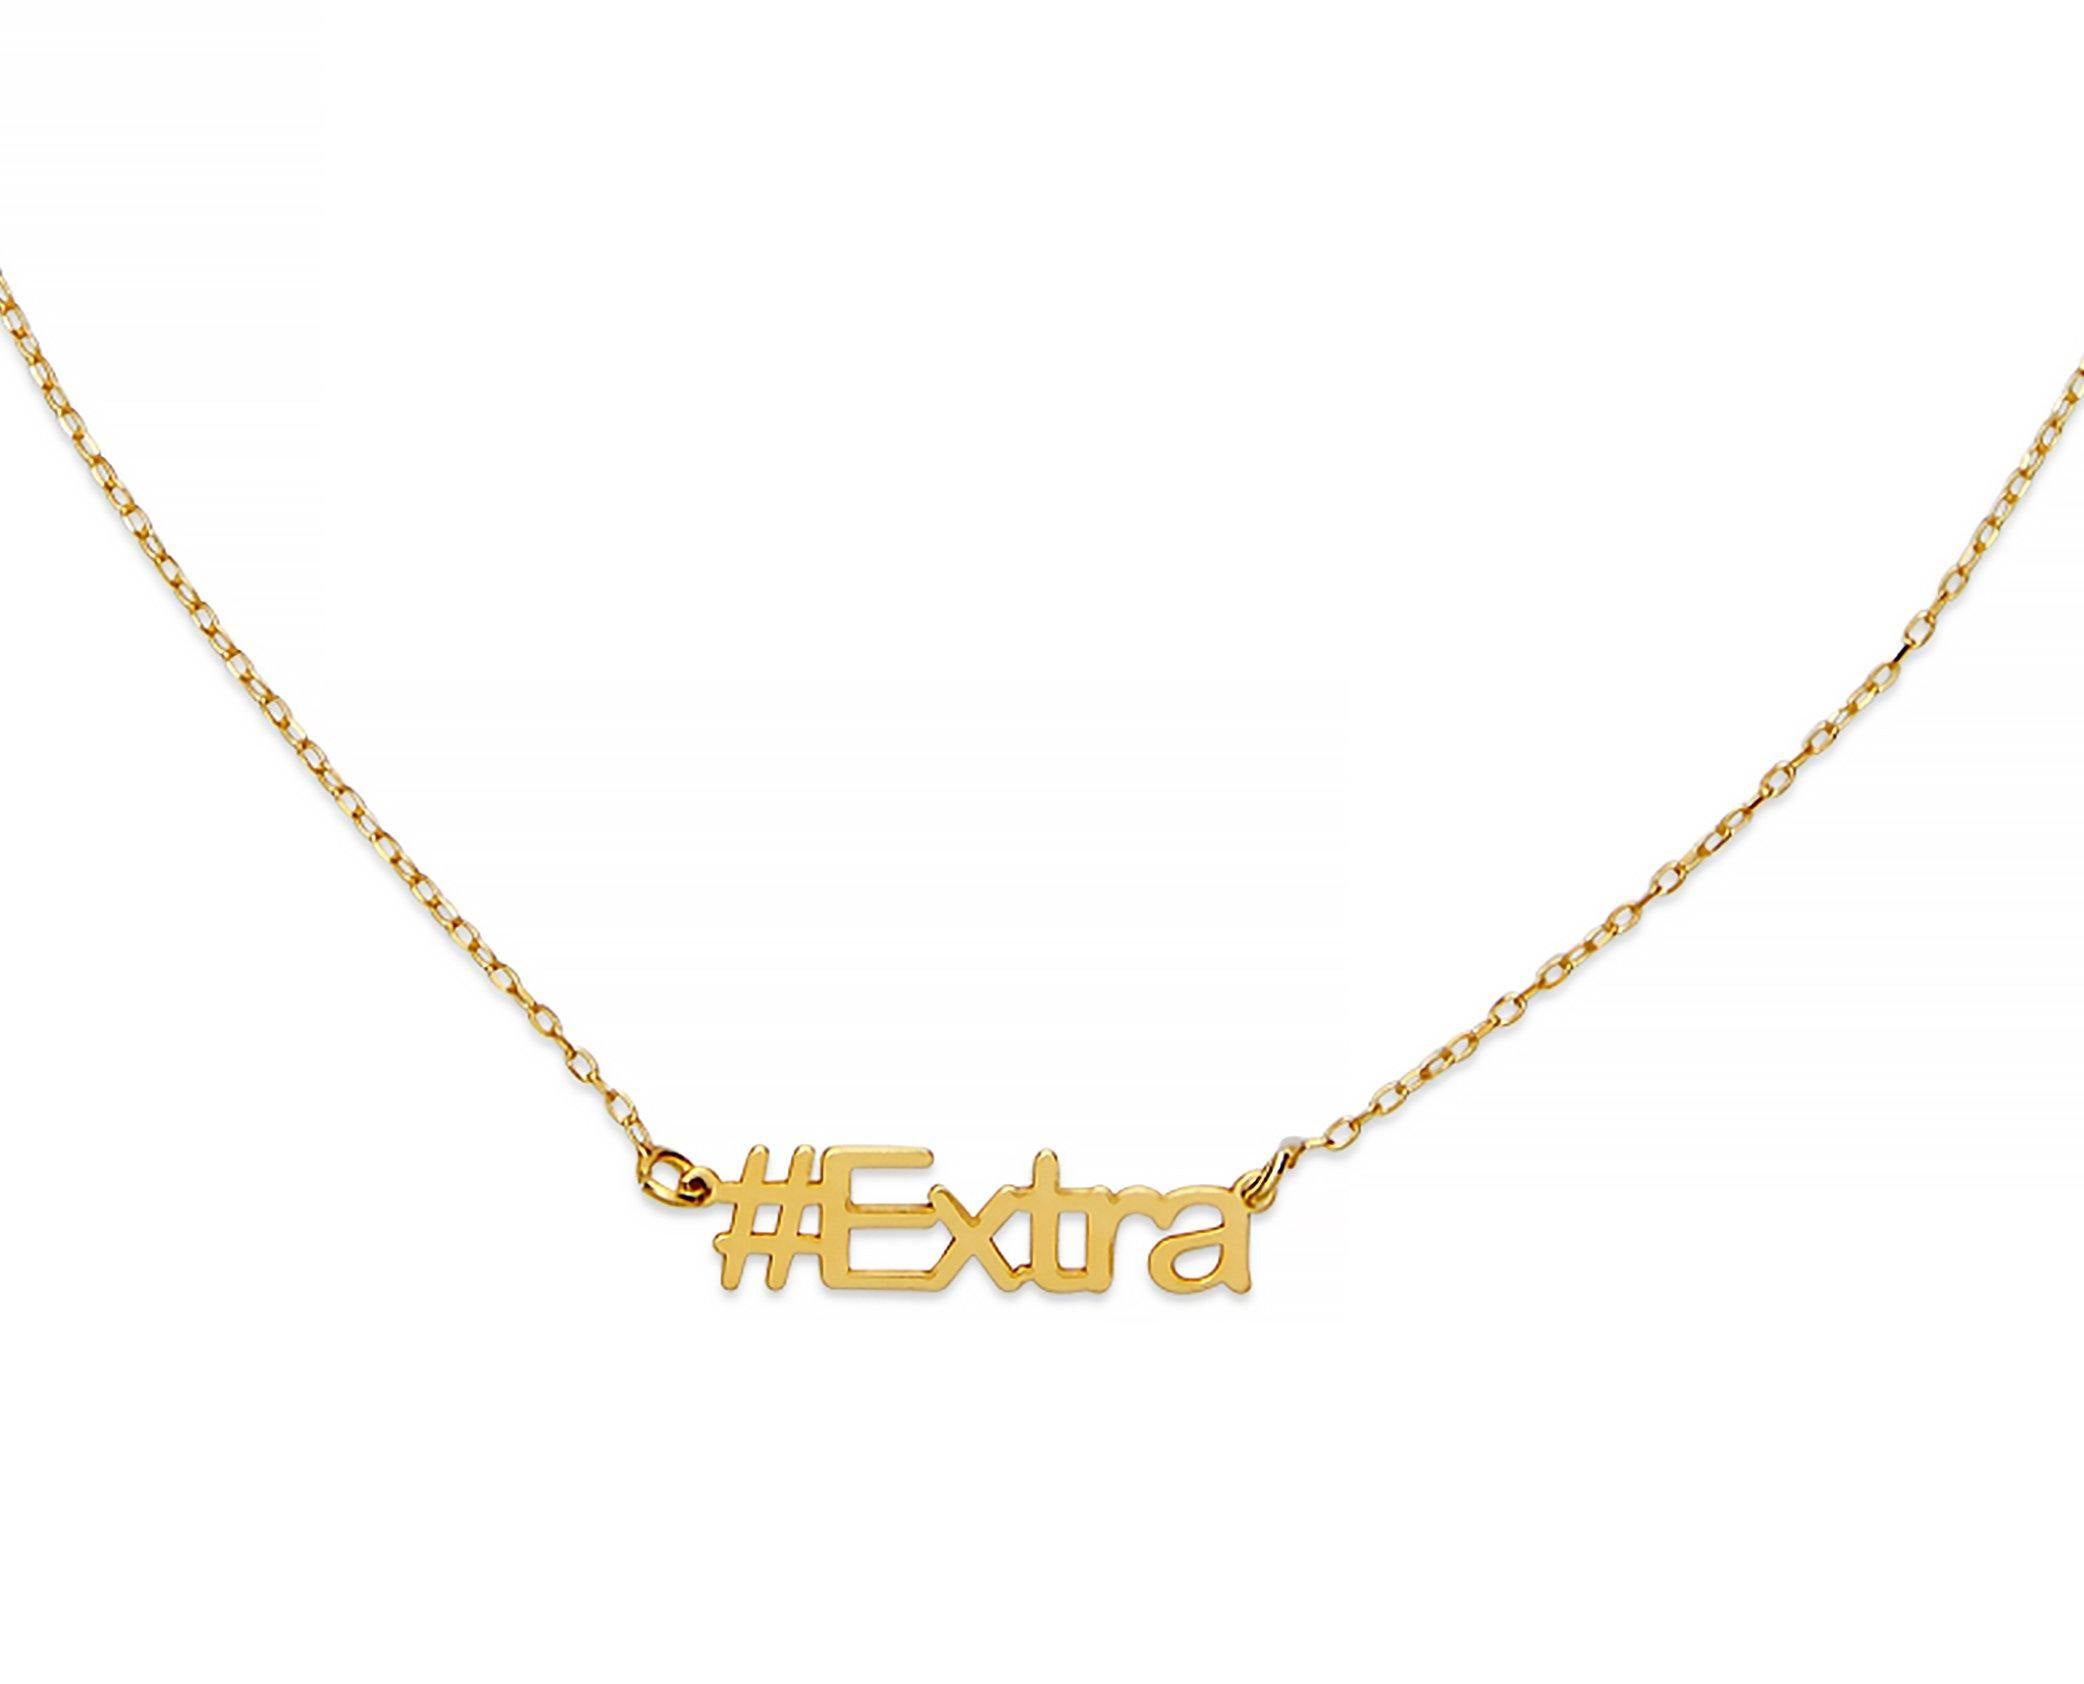 Extra Hashtag Necklace - InclusiveJewelry